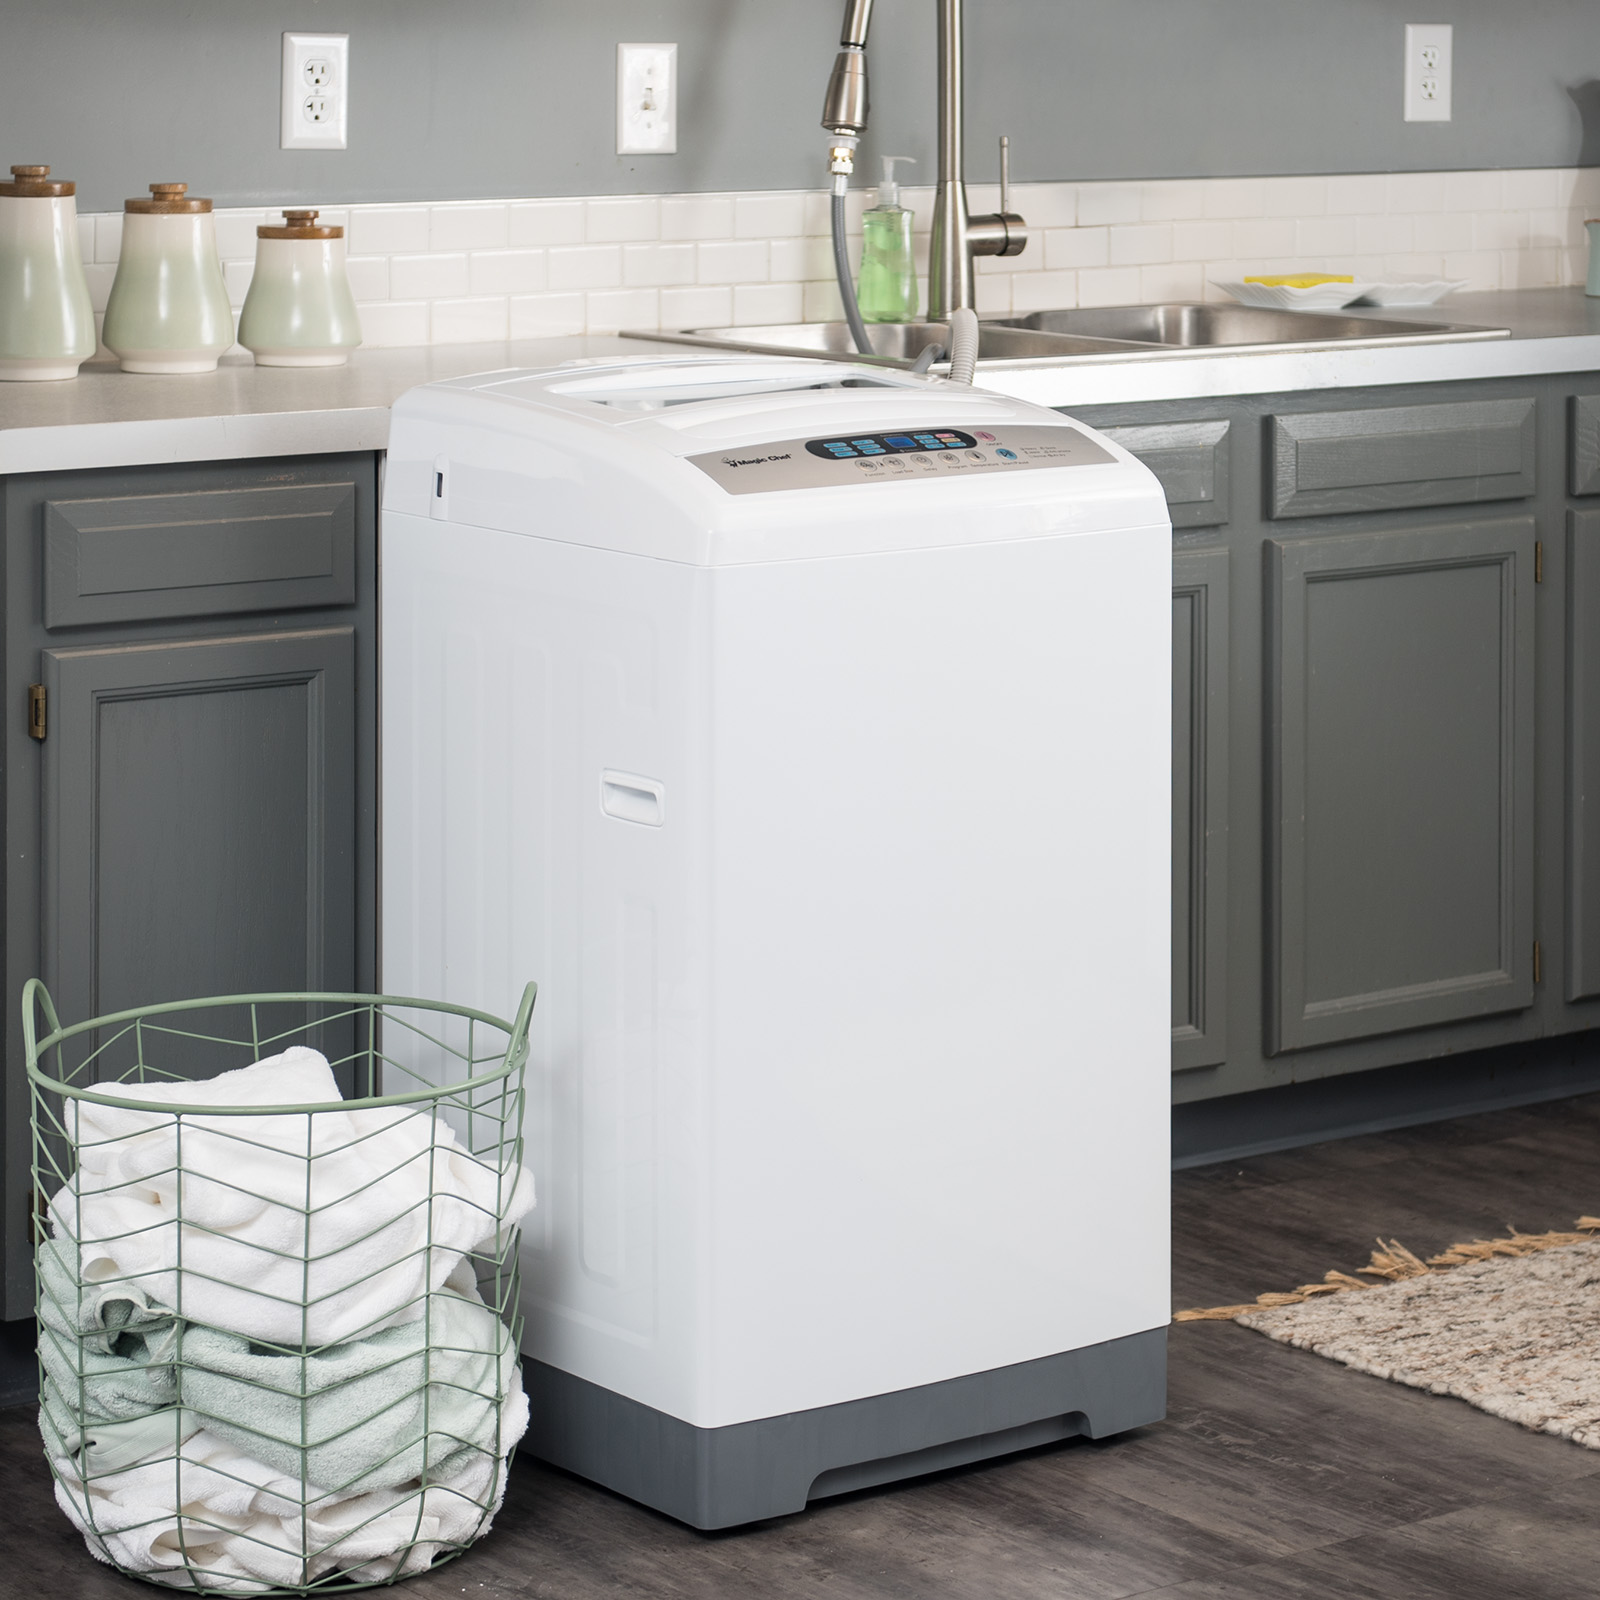 Magic Chef 1 6 cu ft Top Load Portable Washer Walmart